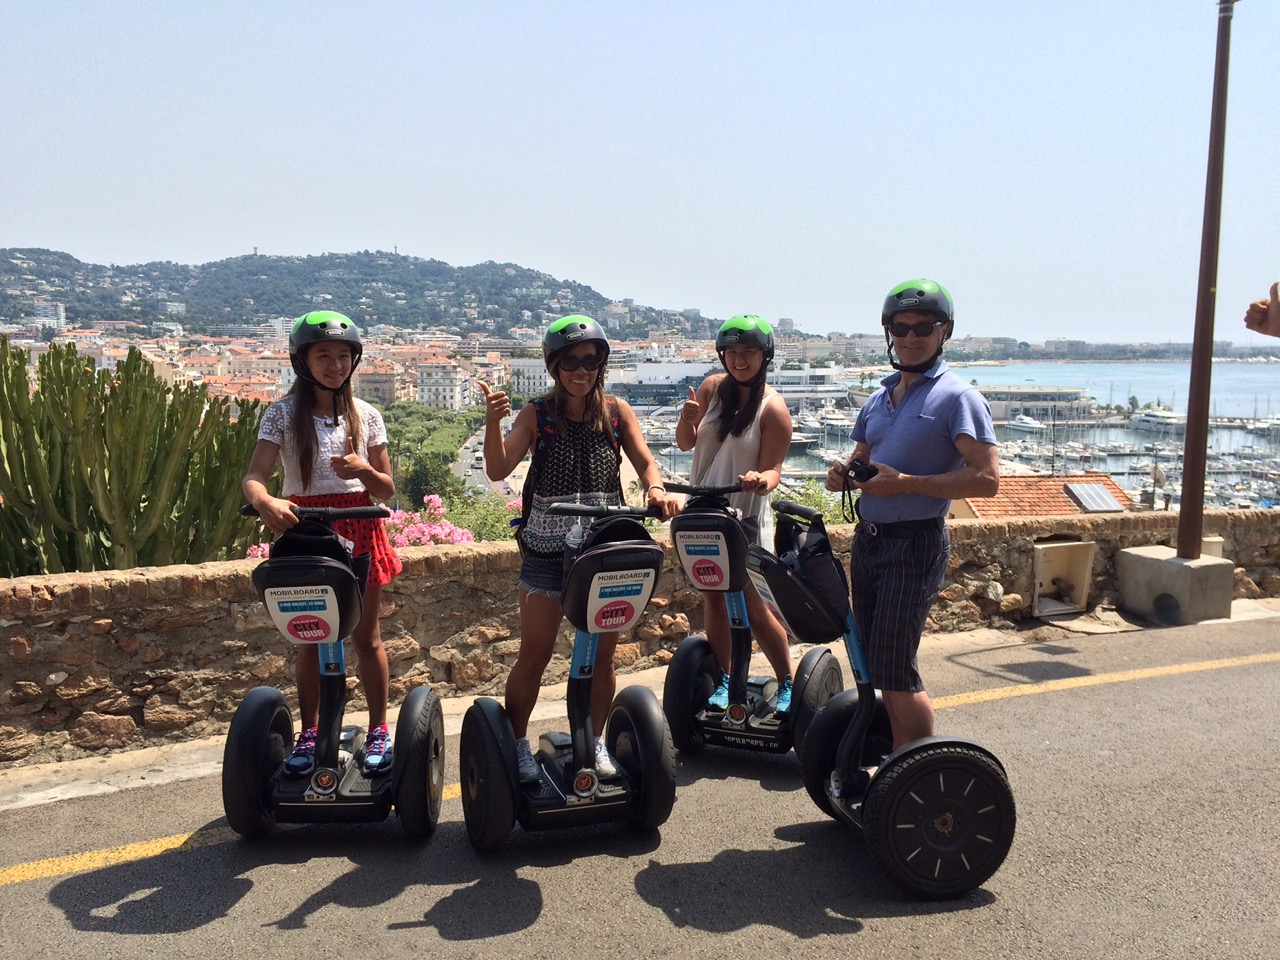 City Tour by MobilBoard Segway Cannes - Place de la Castre , the highest point of Cannes with its panoramic view on the bay